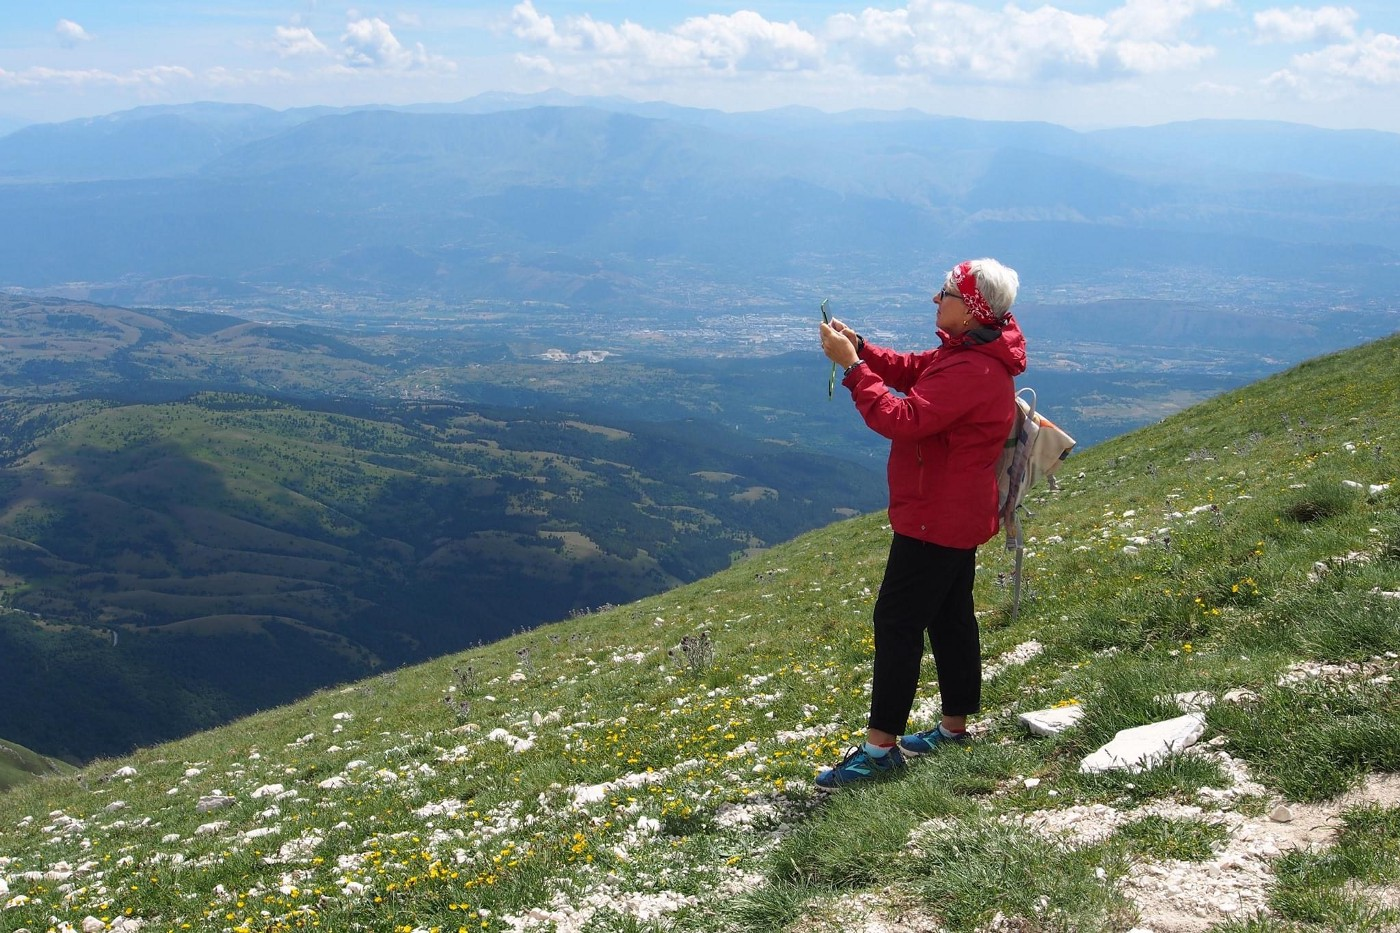 The author taking a photo in Abruzzo Italy.